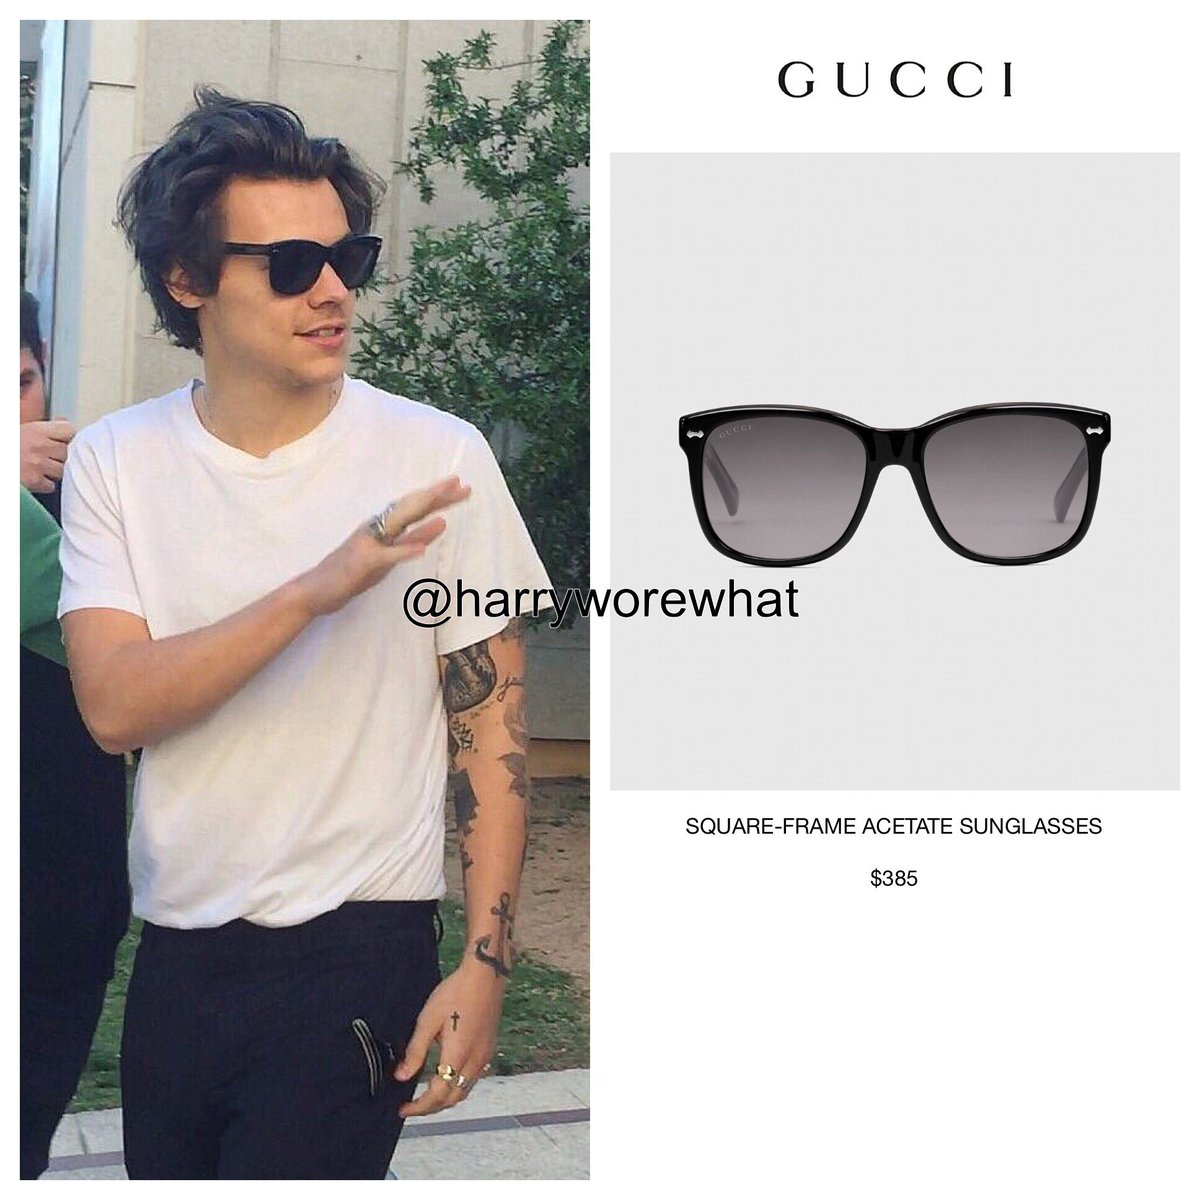 79f217809c Harry Wore What on Twitter